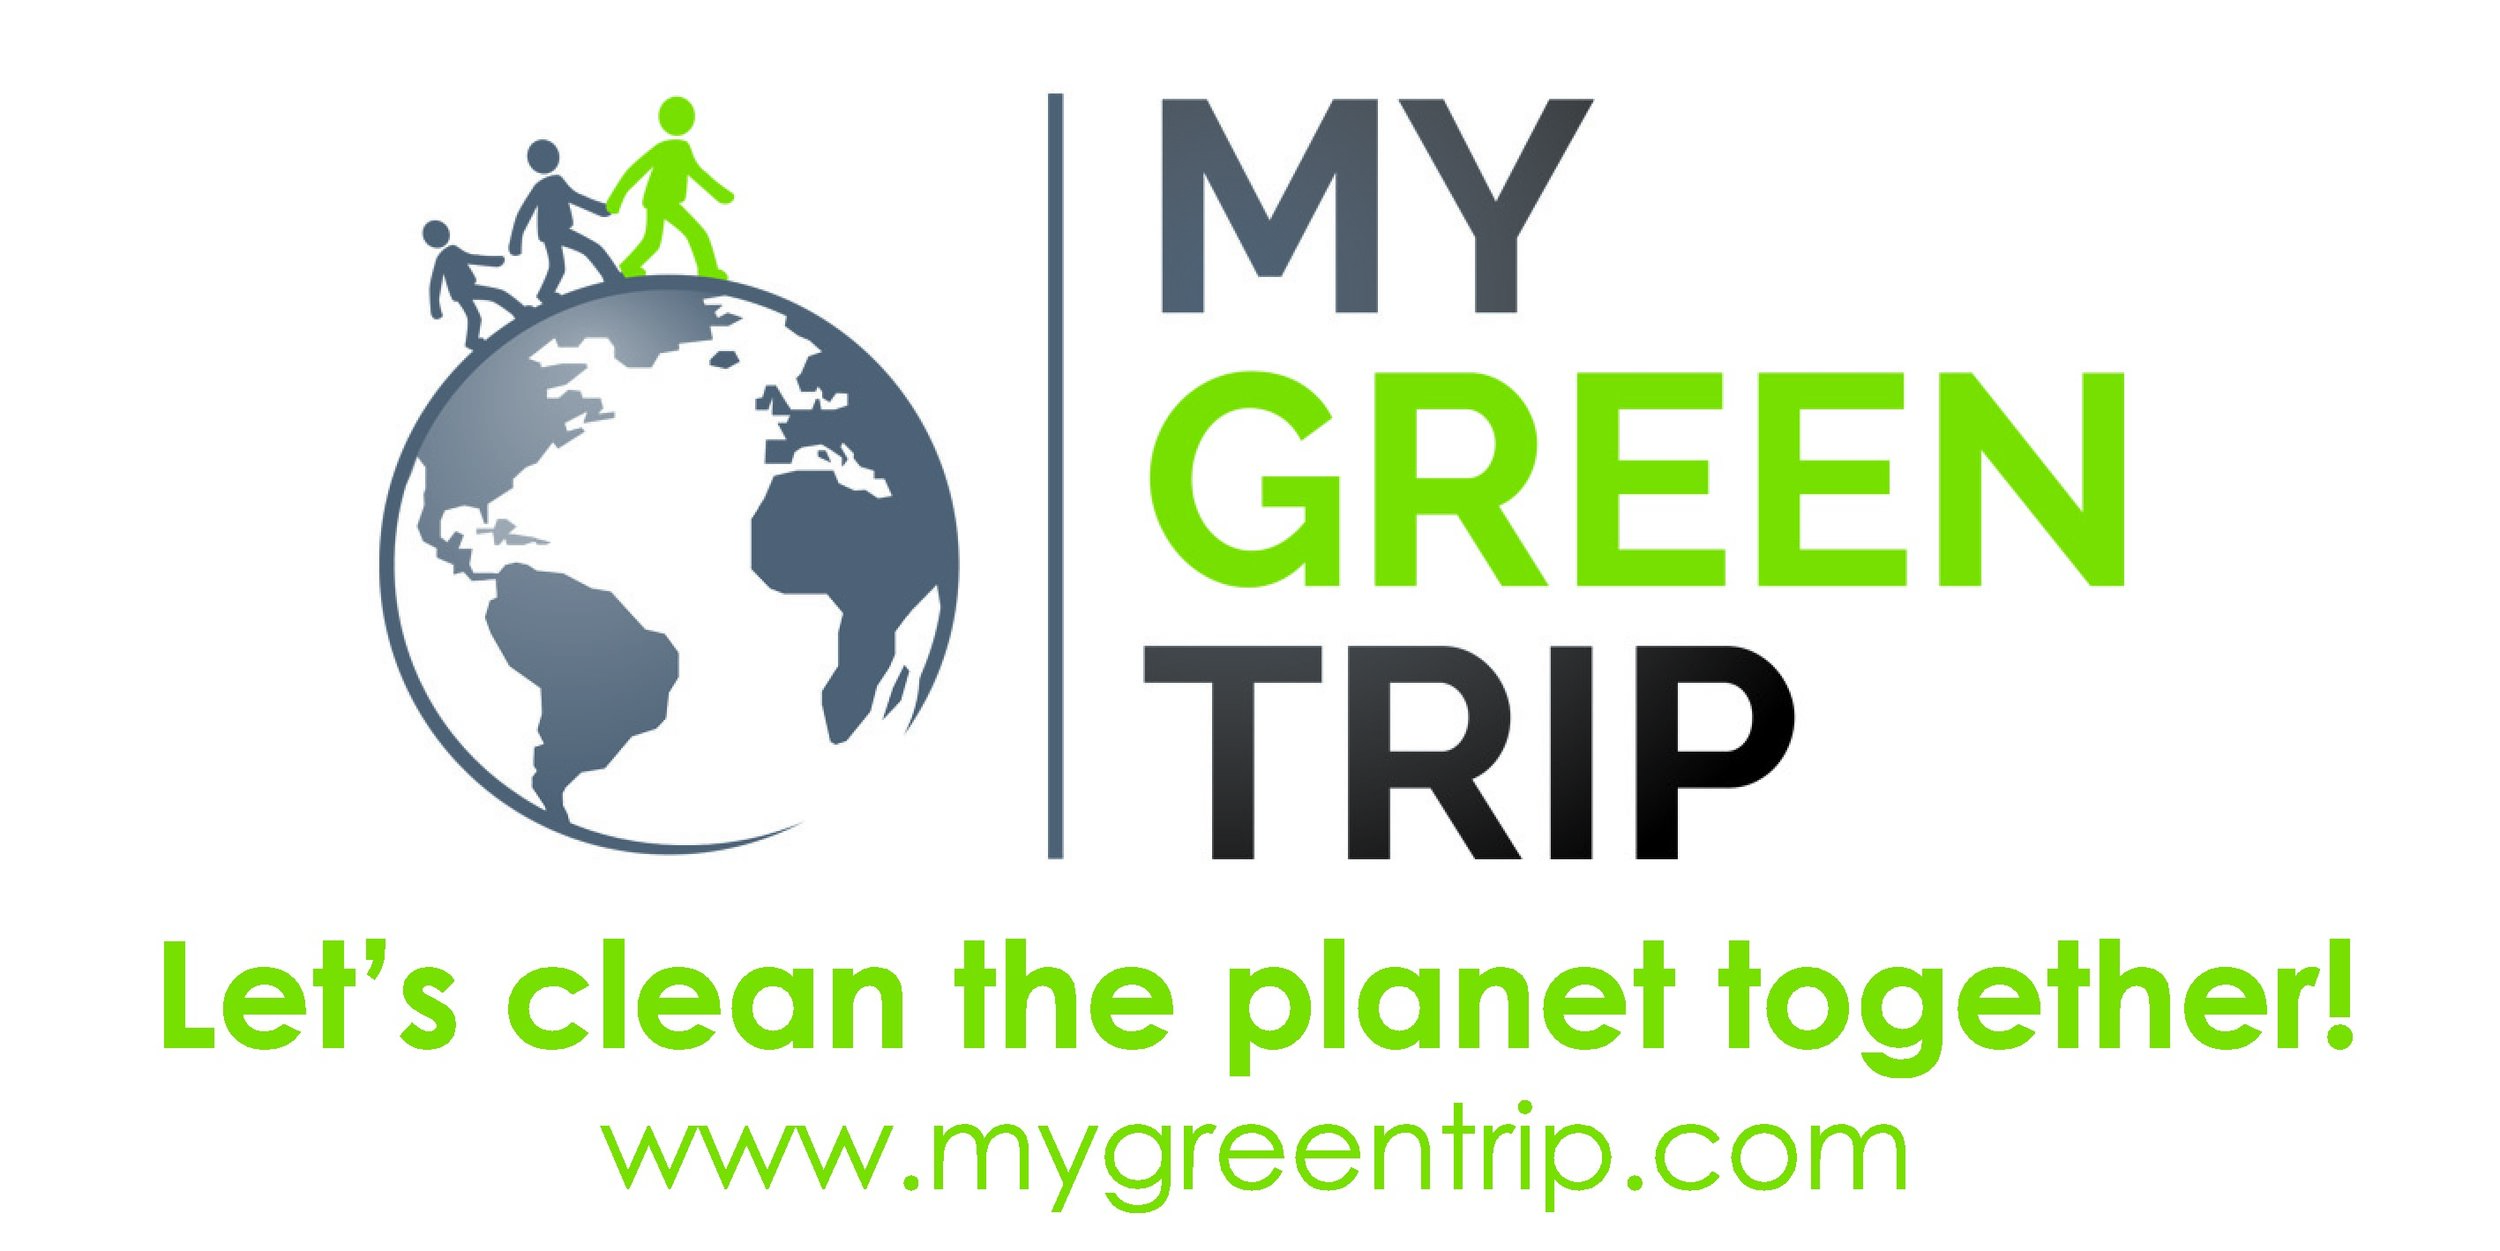 My Green Trip -   Nature clean-ups   My Green Trip is a community of travelers and tourism organisations who pick up trash left behind in nature. Together, for our planet.  Check them out!